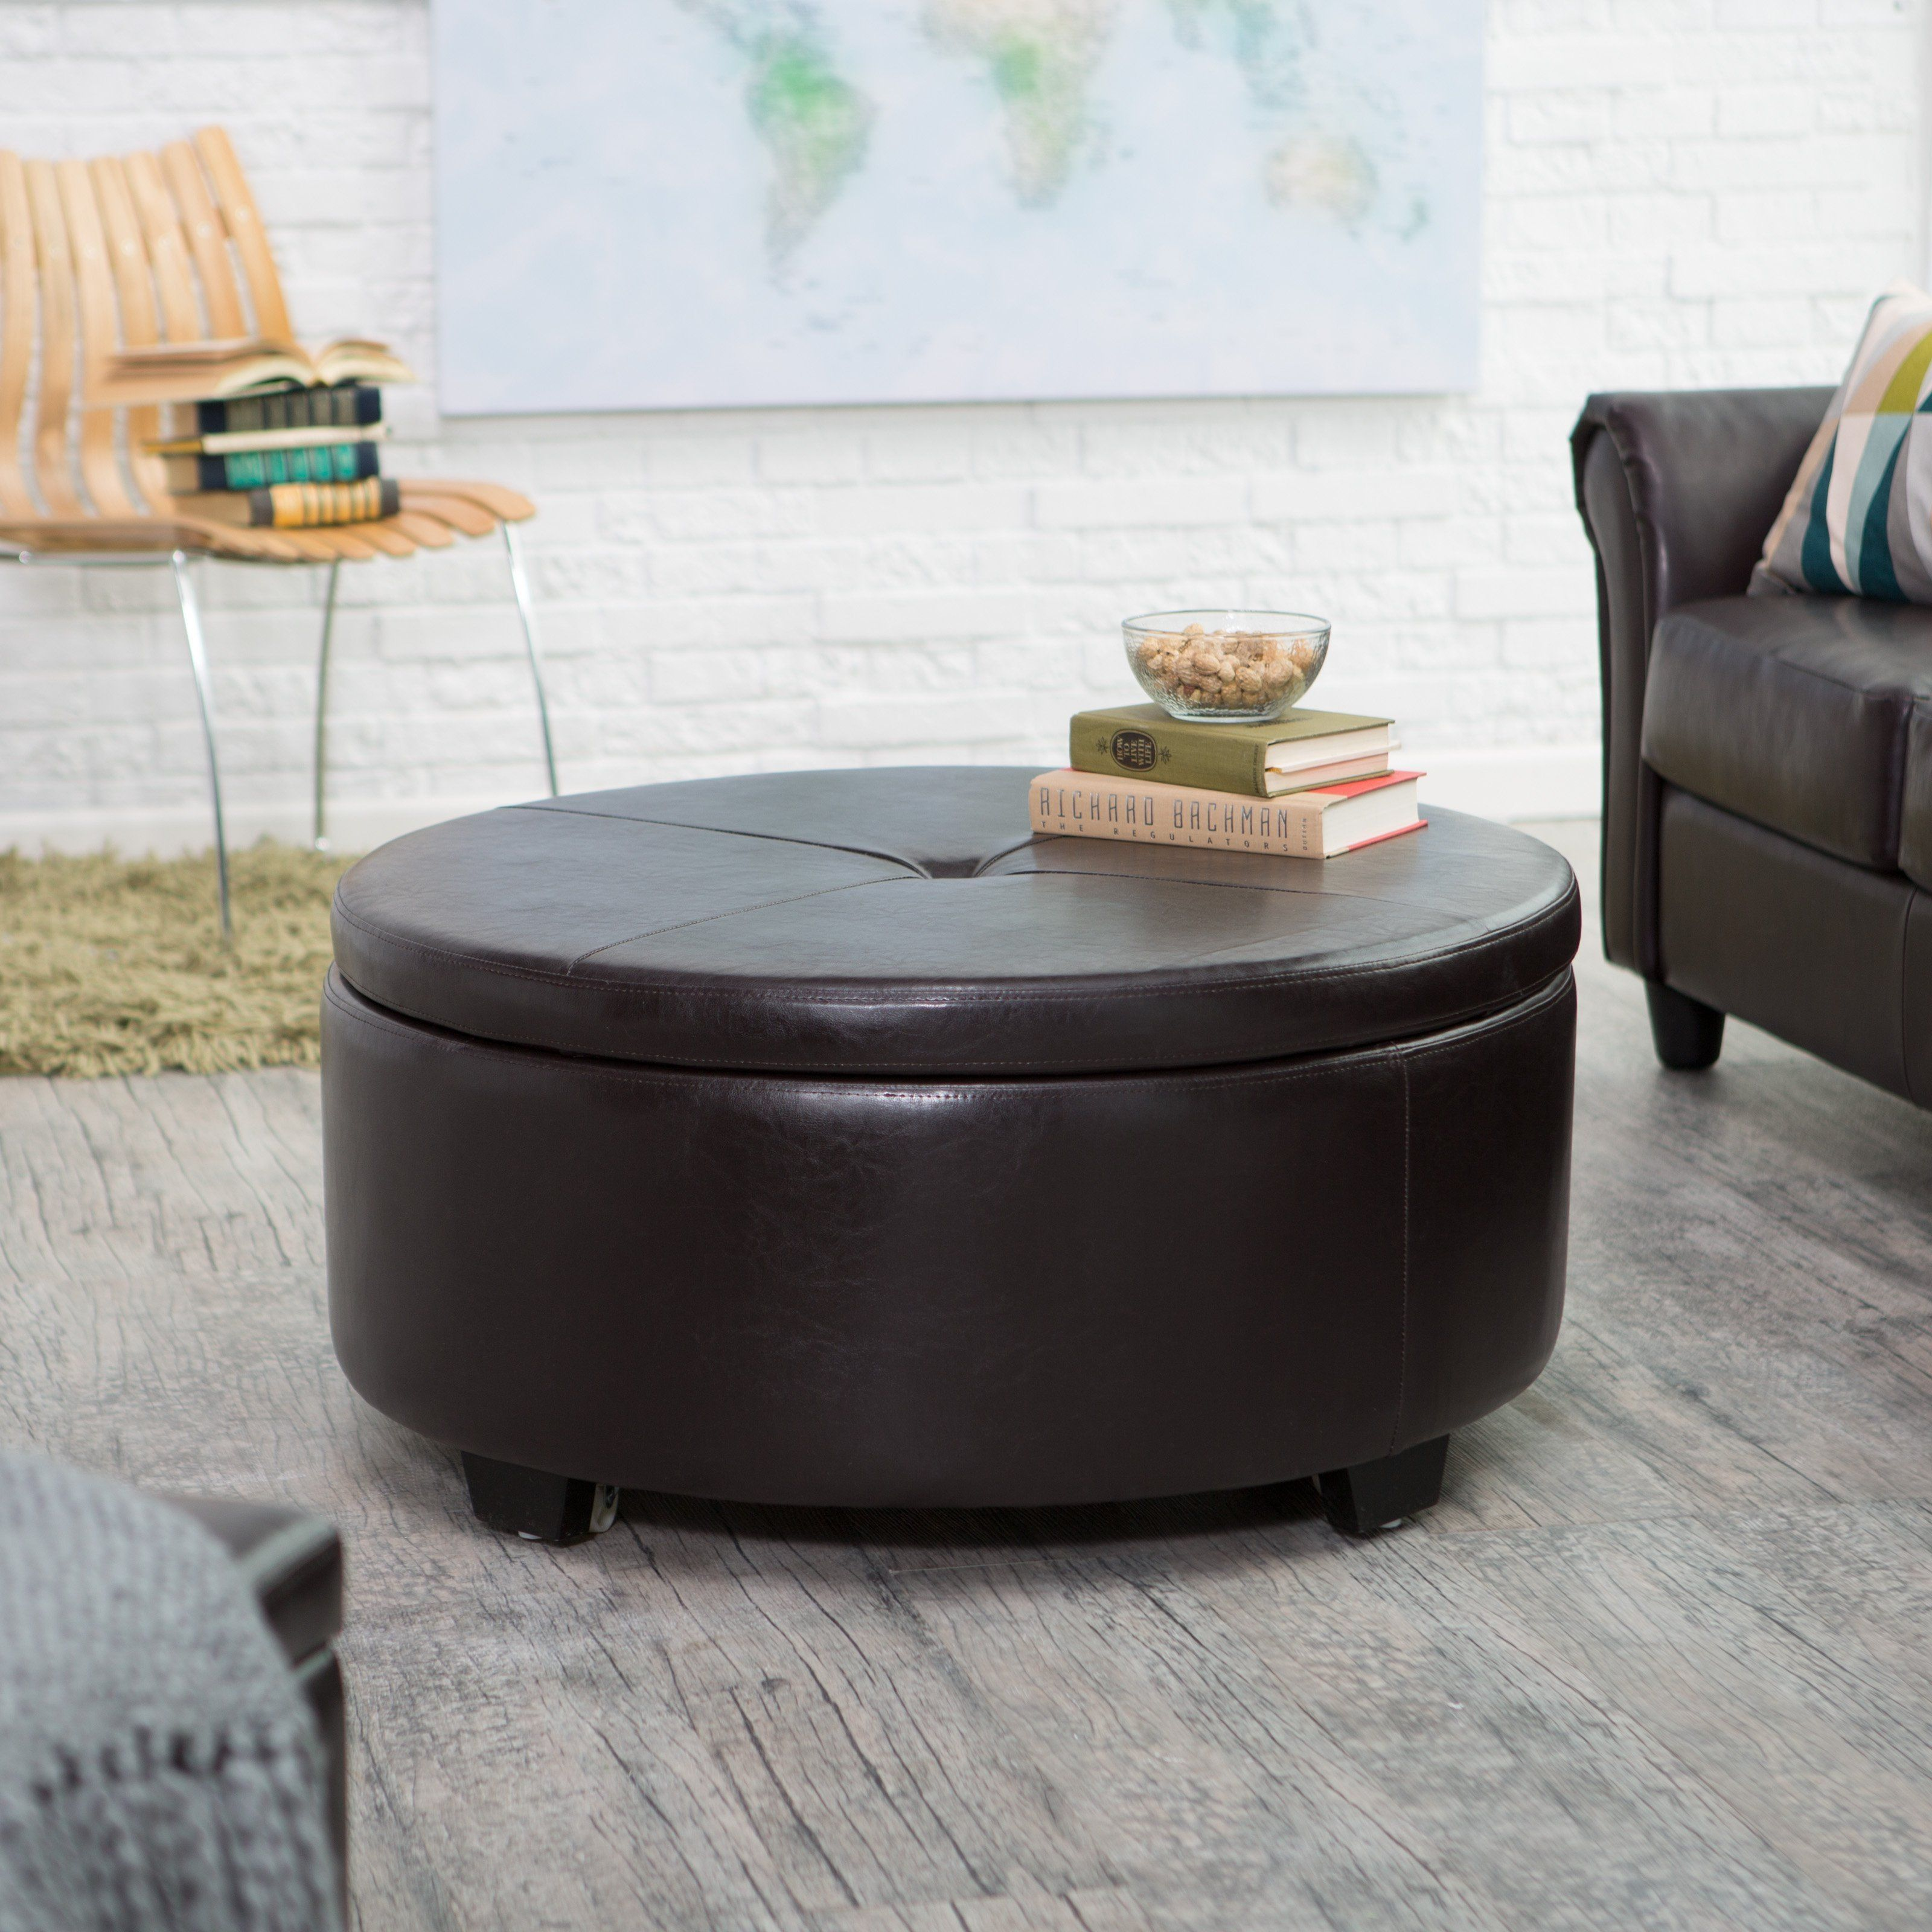 Large Square Storage Ottoman Coffee Table Download Round Leather Ottoman C Leather Ottoman Coffee Table Storage Ottoman Coffee Table Round Ottoman Coffee Table [ 3200 x 3200 Pixel ]